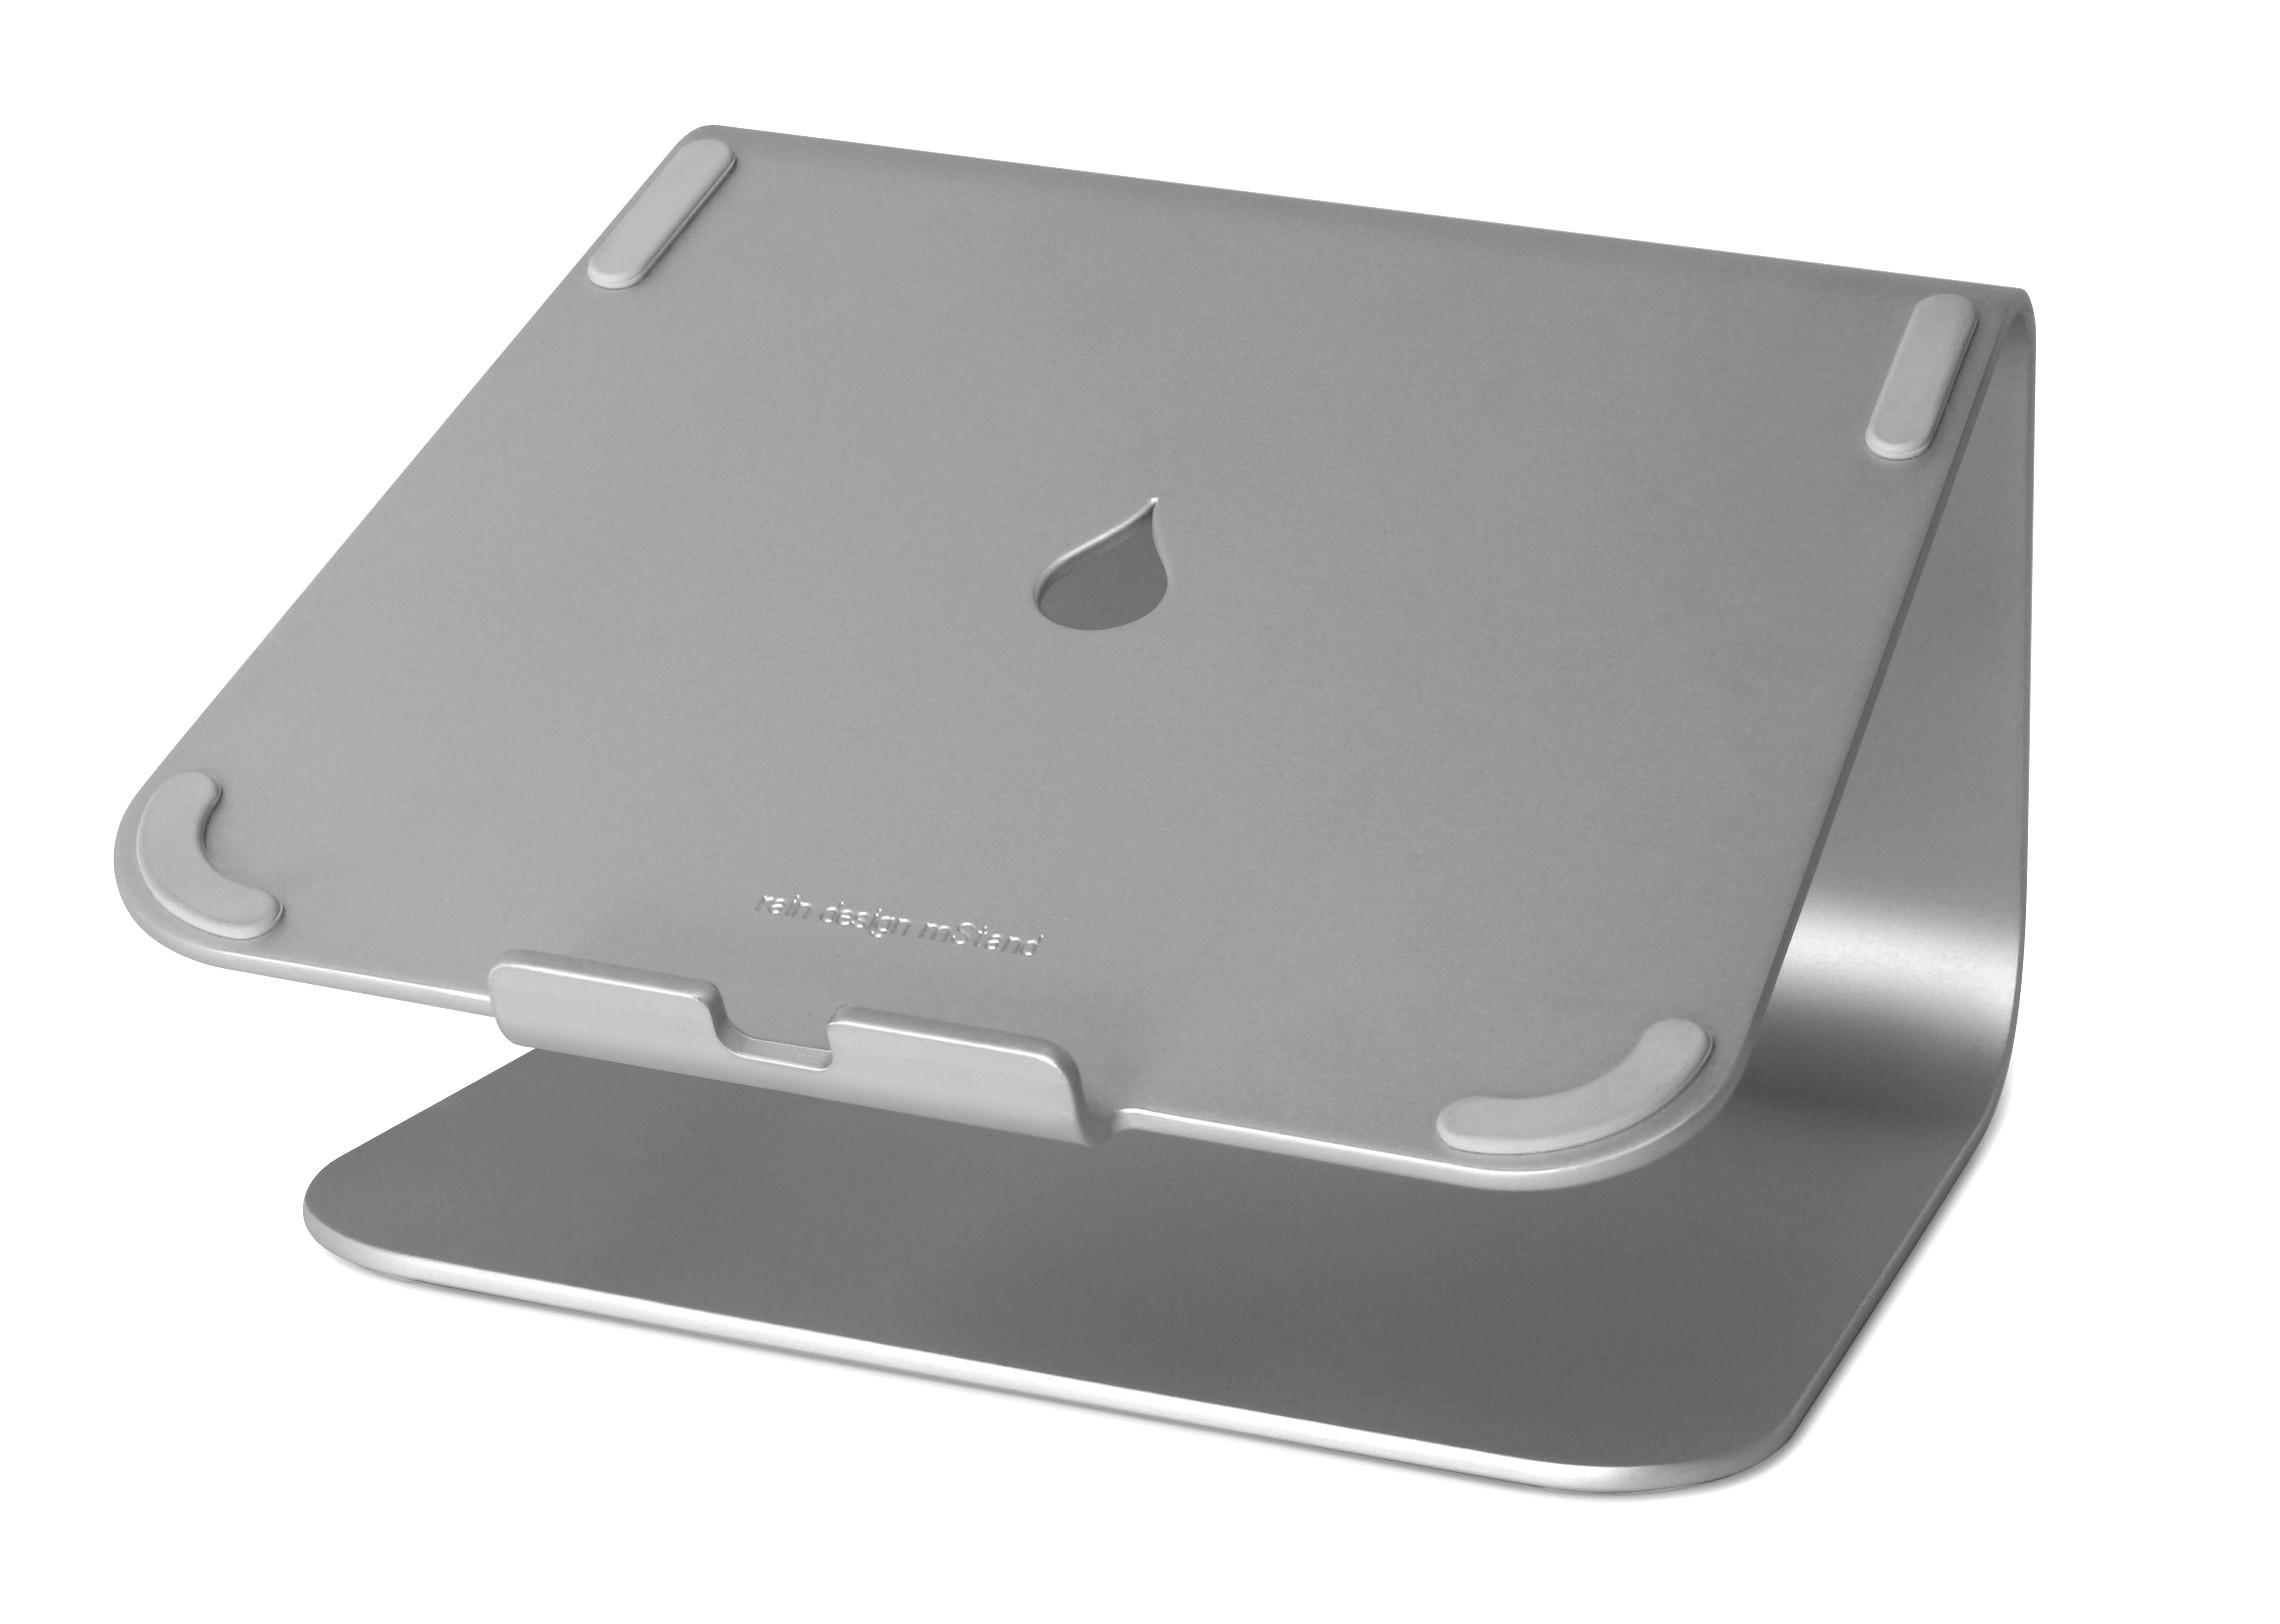 Rain Design mStand - Standaard voor MacBook Air en MacBook Pro | iCentre